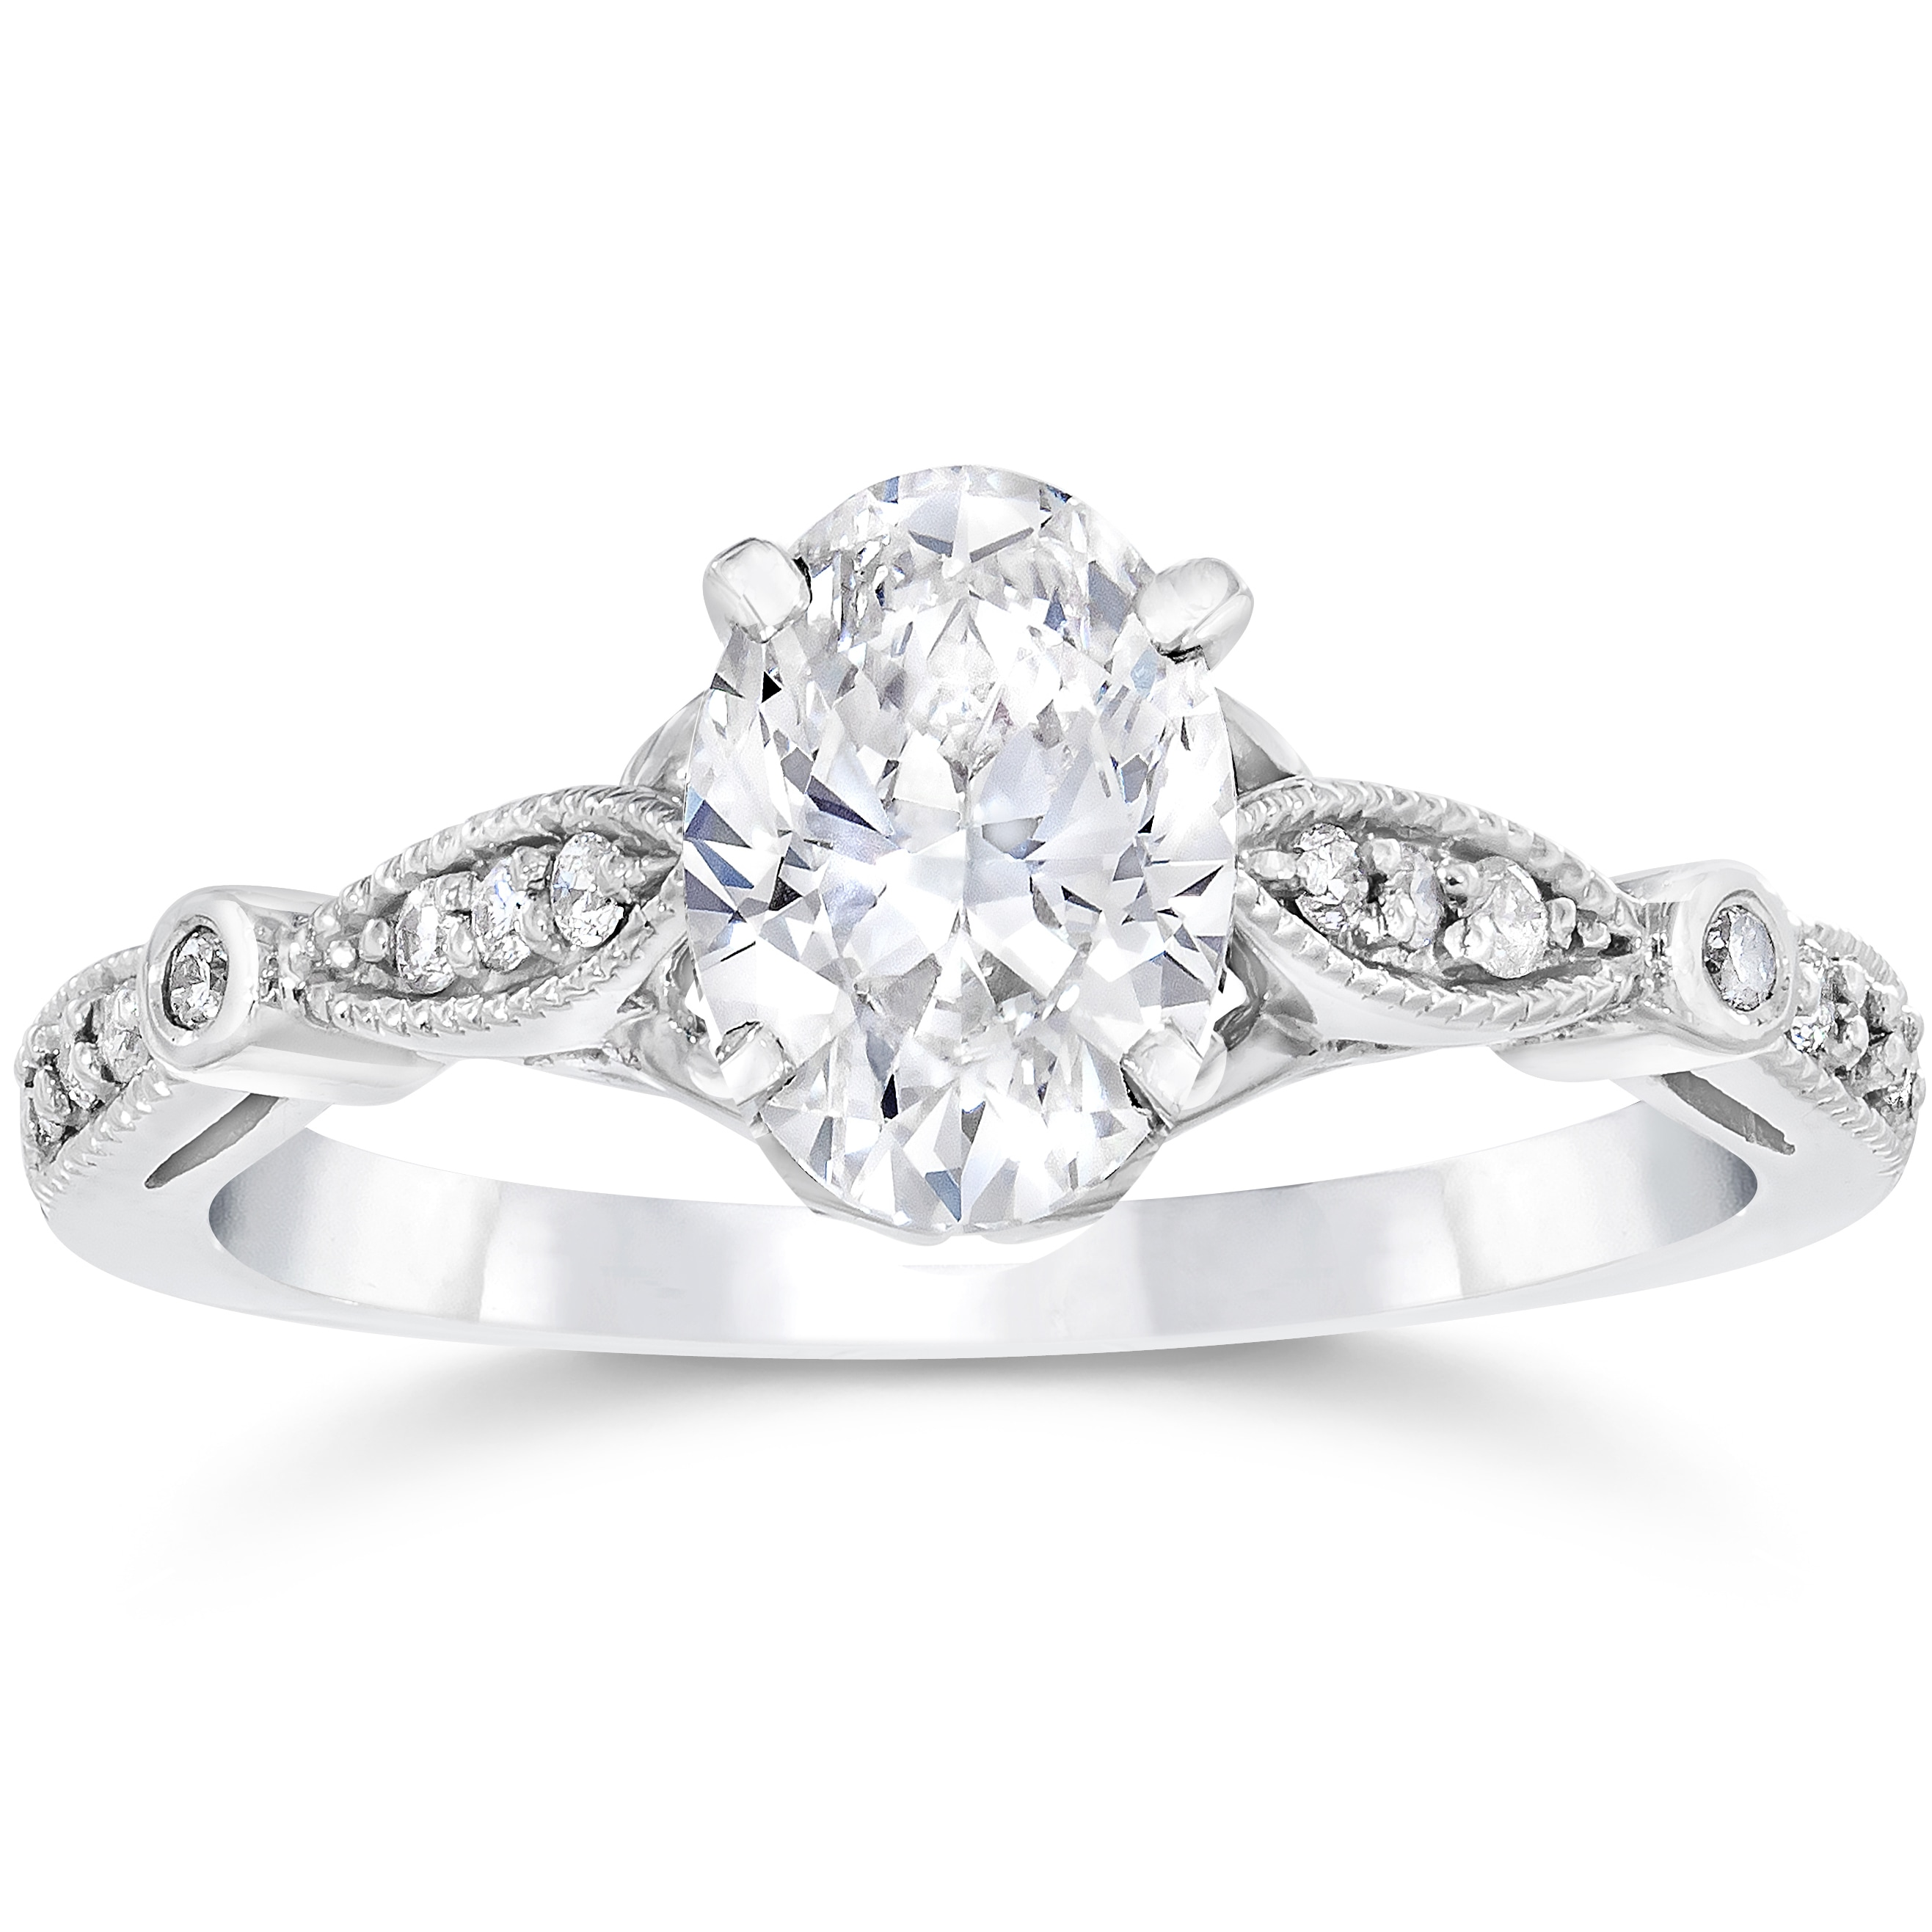 oval a with x rings f palladium in setting gallery ovals cut colour engagement e hand diamond made vs trilogy clarity